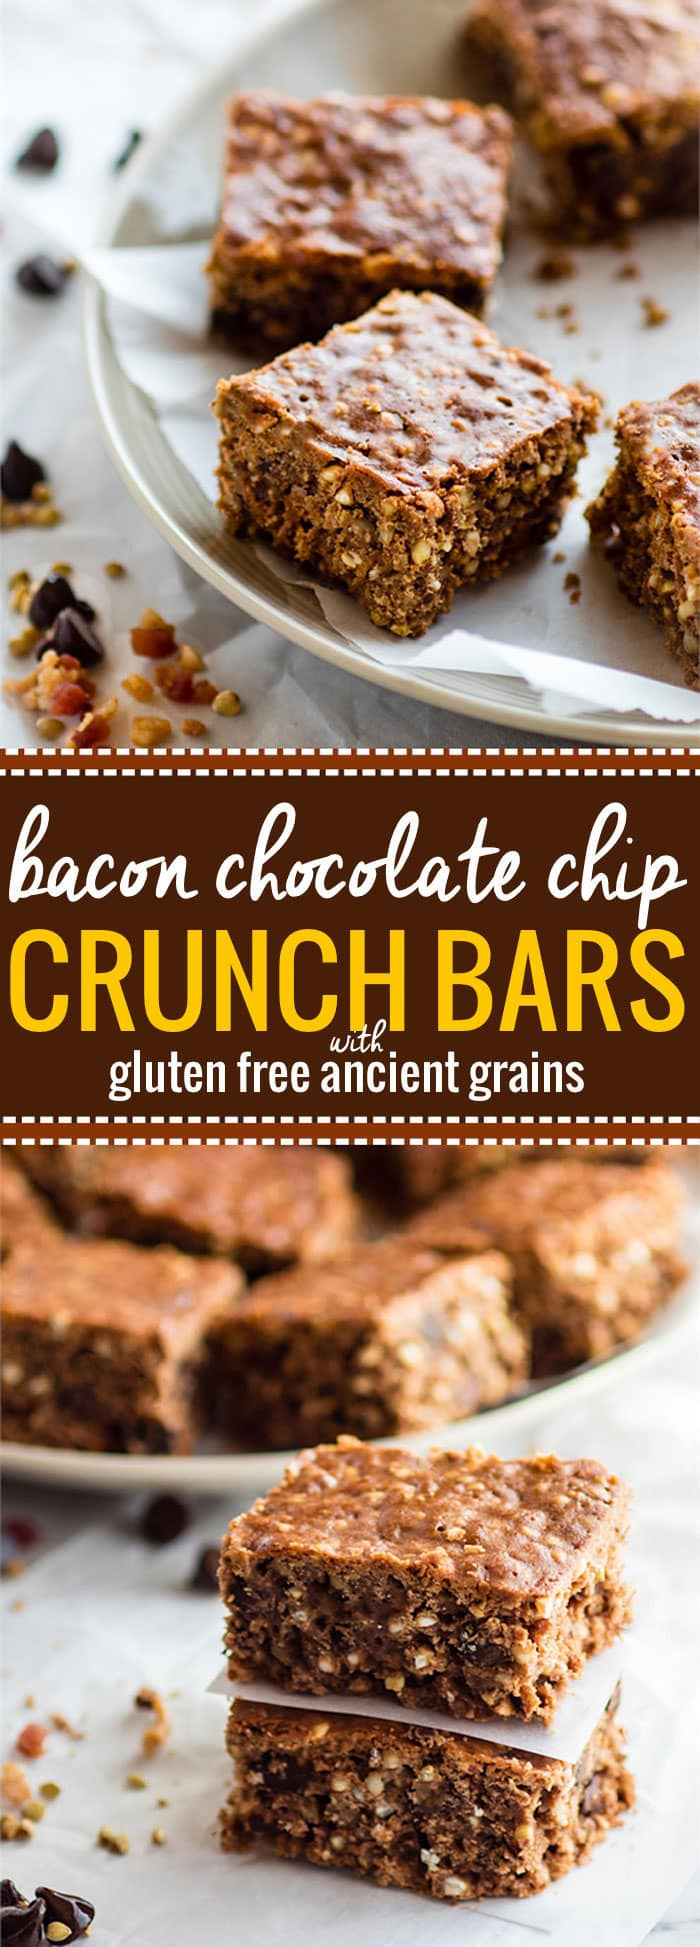 "Bacon Chocolate Chip homemade Crunch Bars! The original ""crunch"" bar just got an upgrade! These gluten free crunch bars are and made with uncured bacon bits, dark chocolate chips, cocoa, and ancient grains! Sweet, crunchy, salty, and just plain DELICIOUS! @cottercrunch"